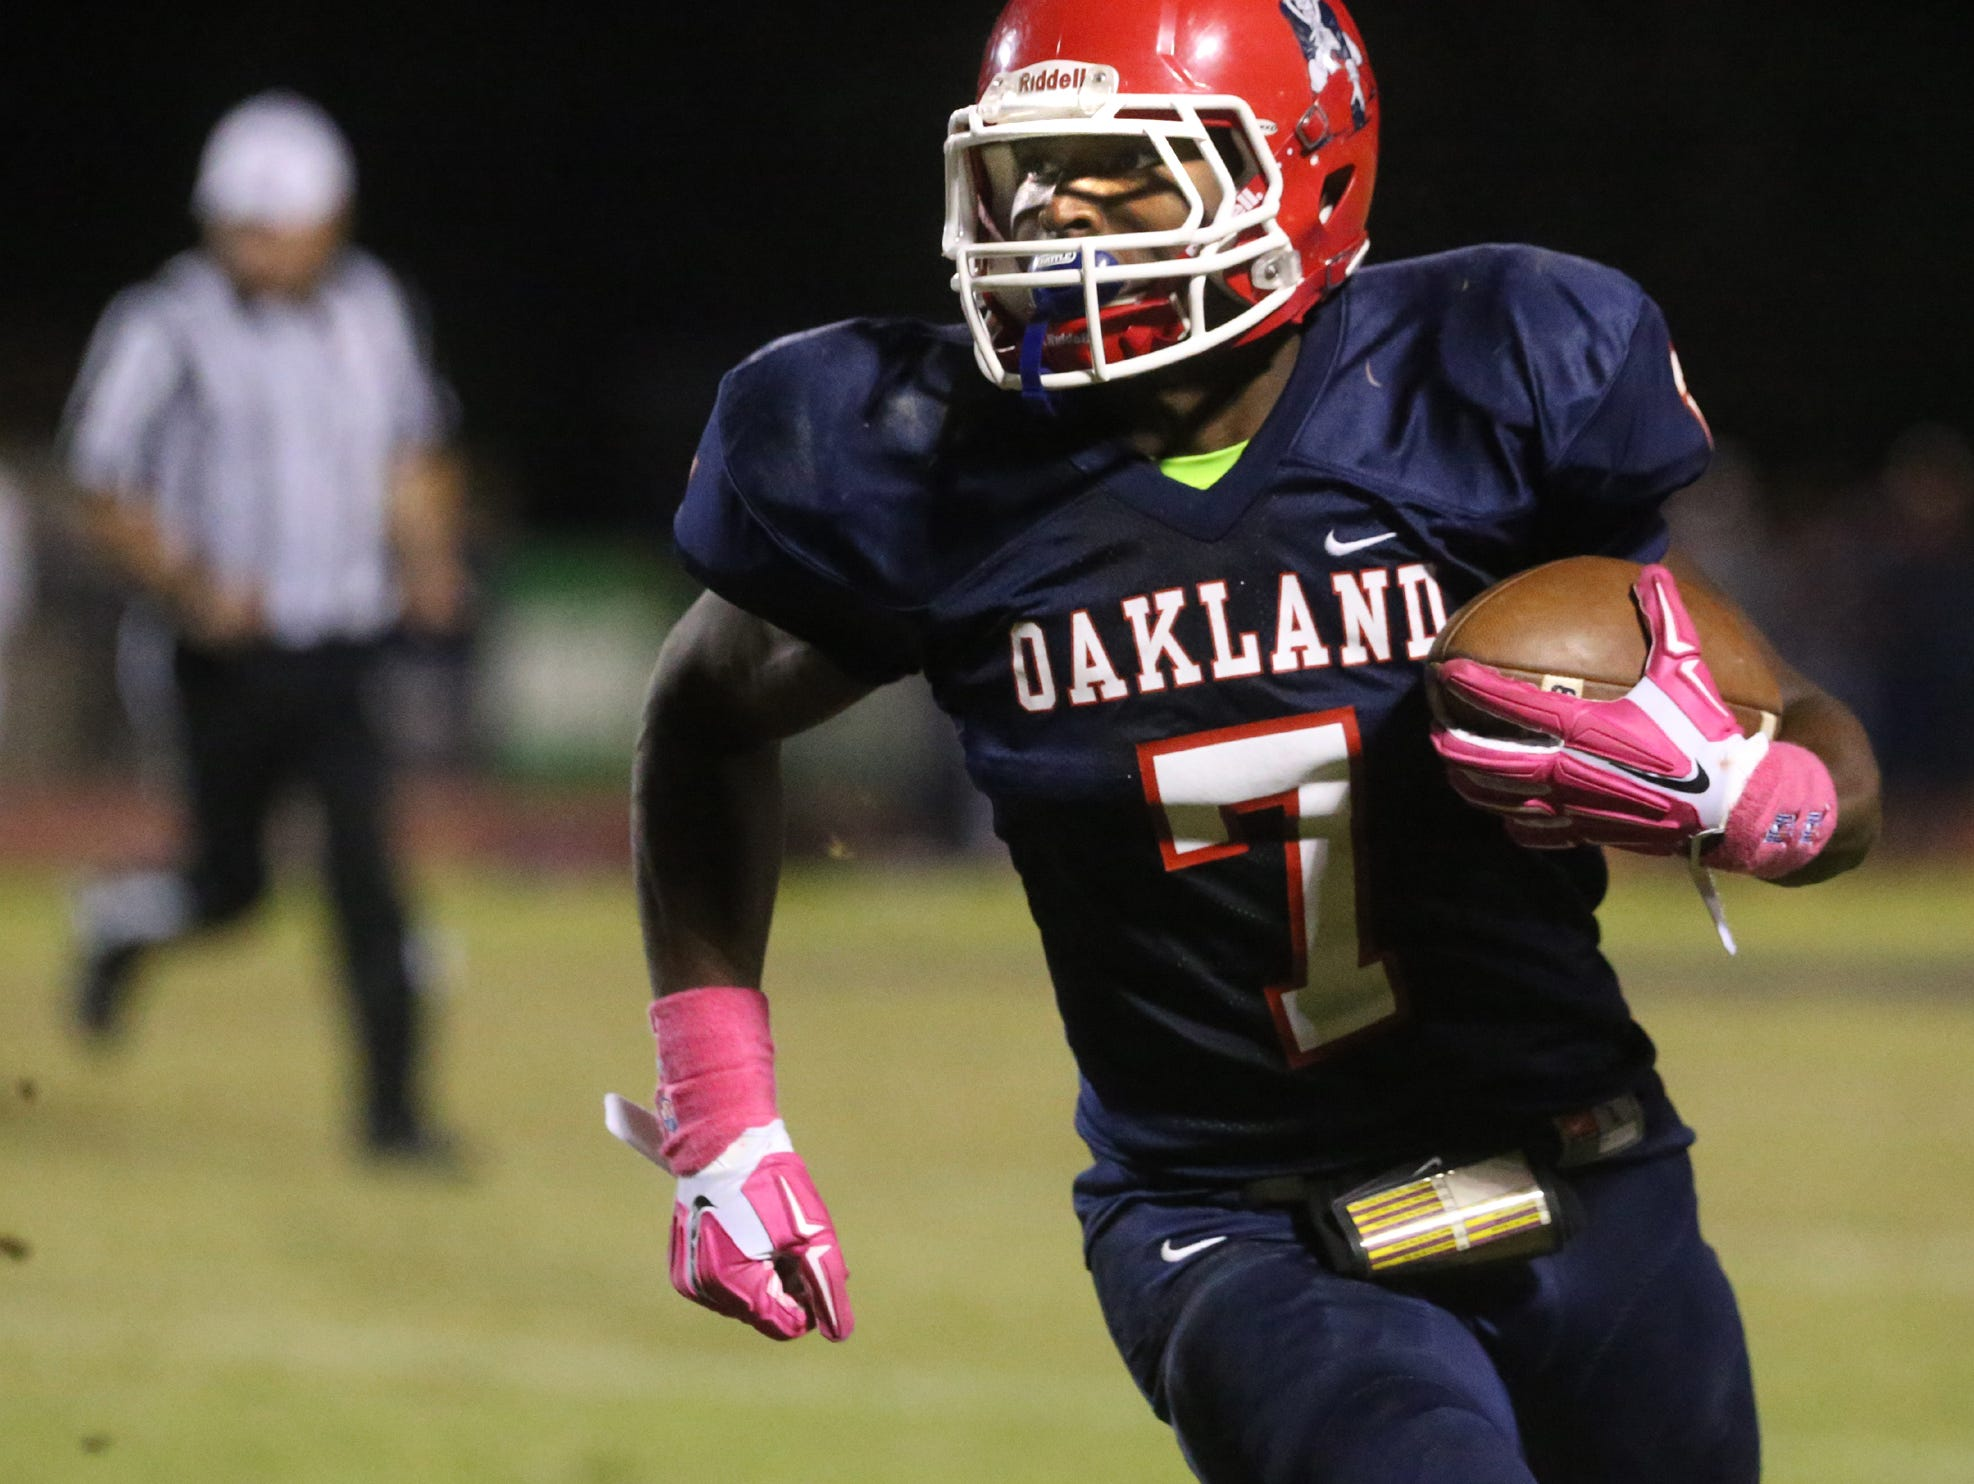 Oakland senior JaCoby Stevens recently committed to LSU.